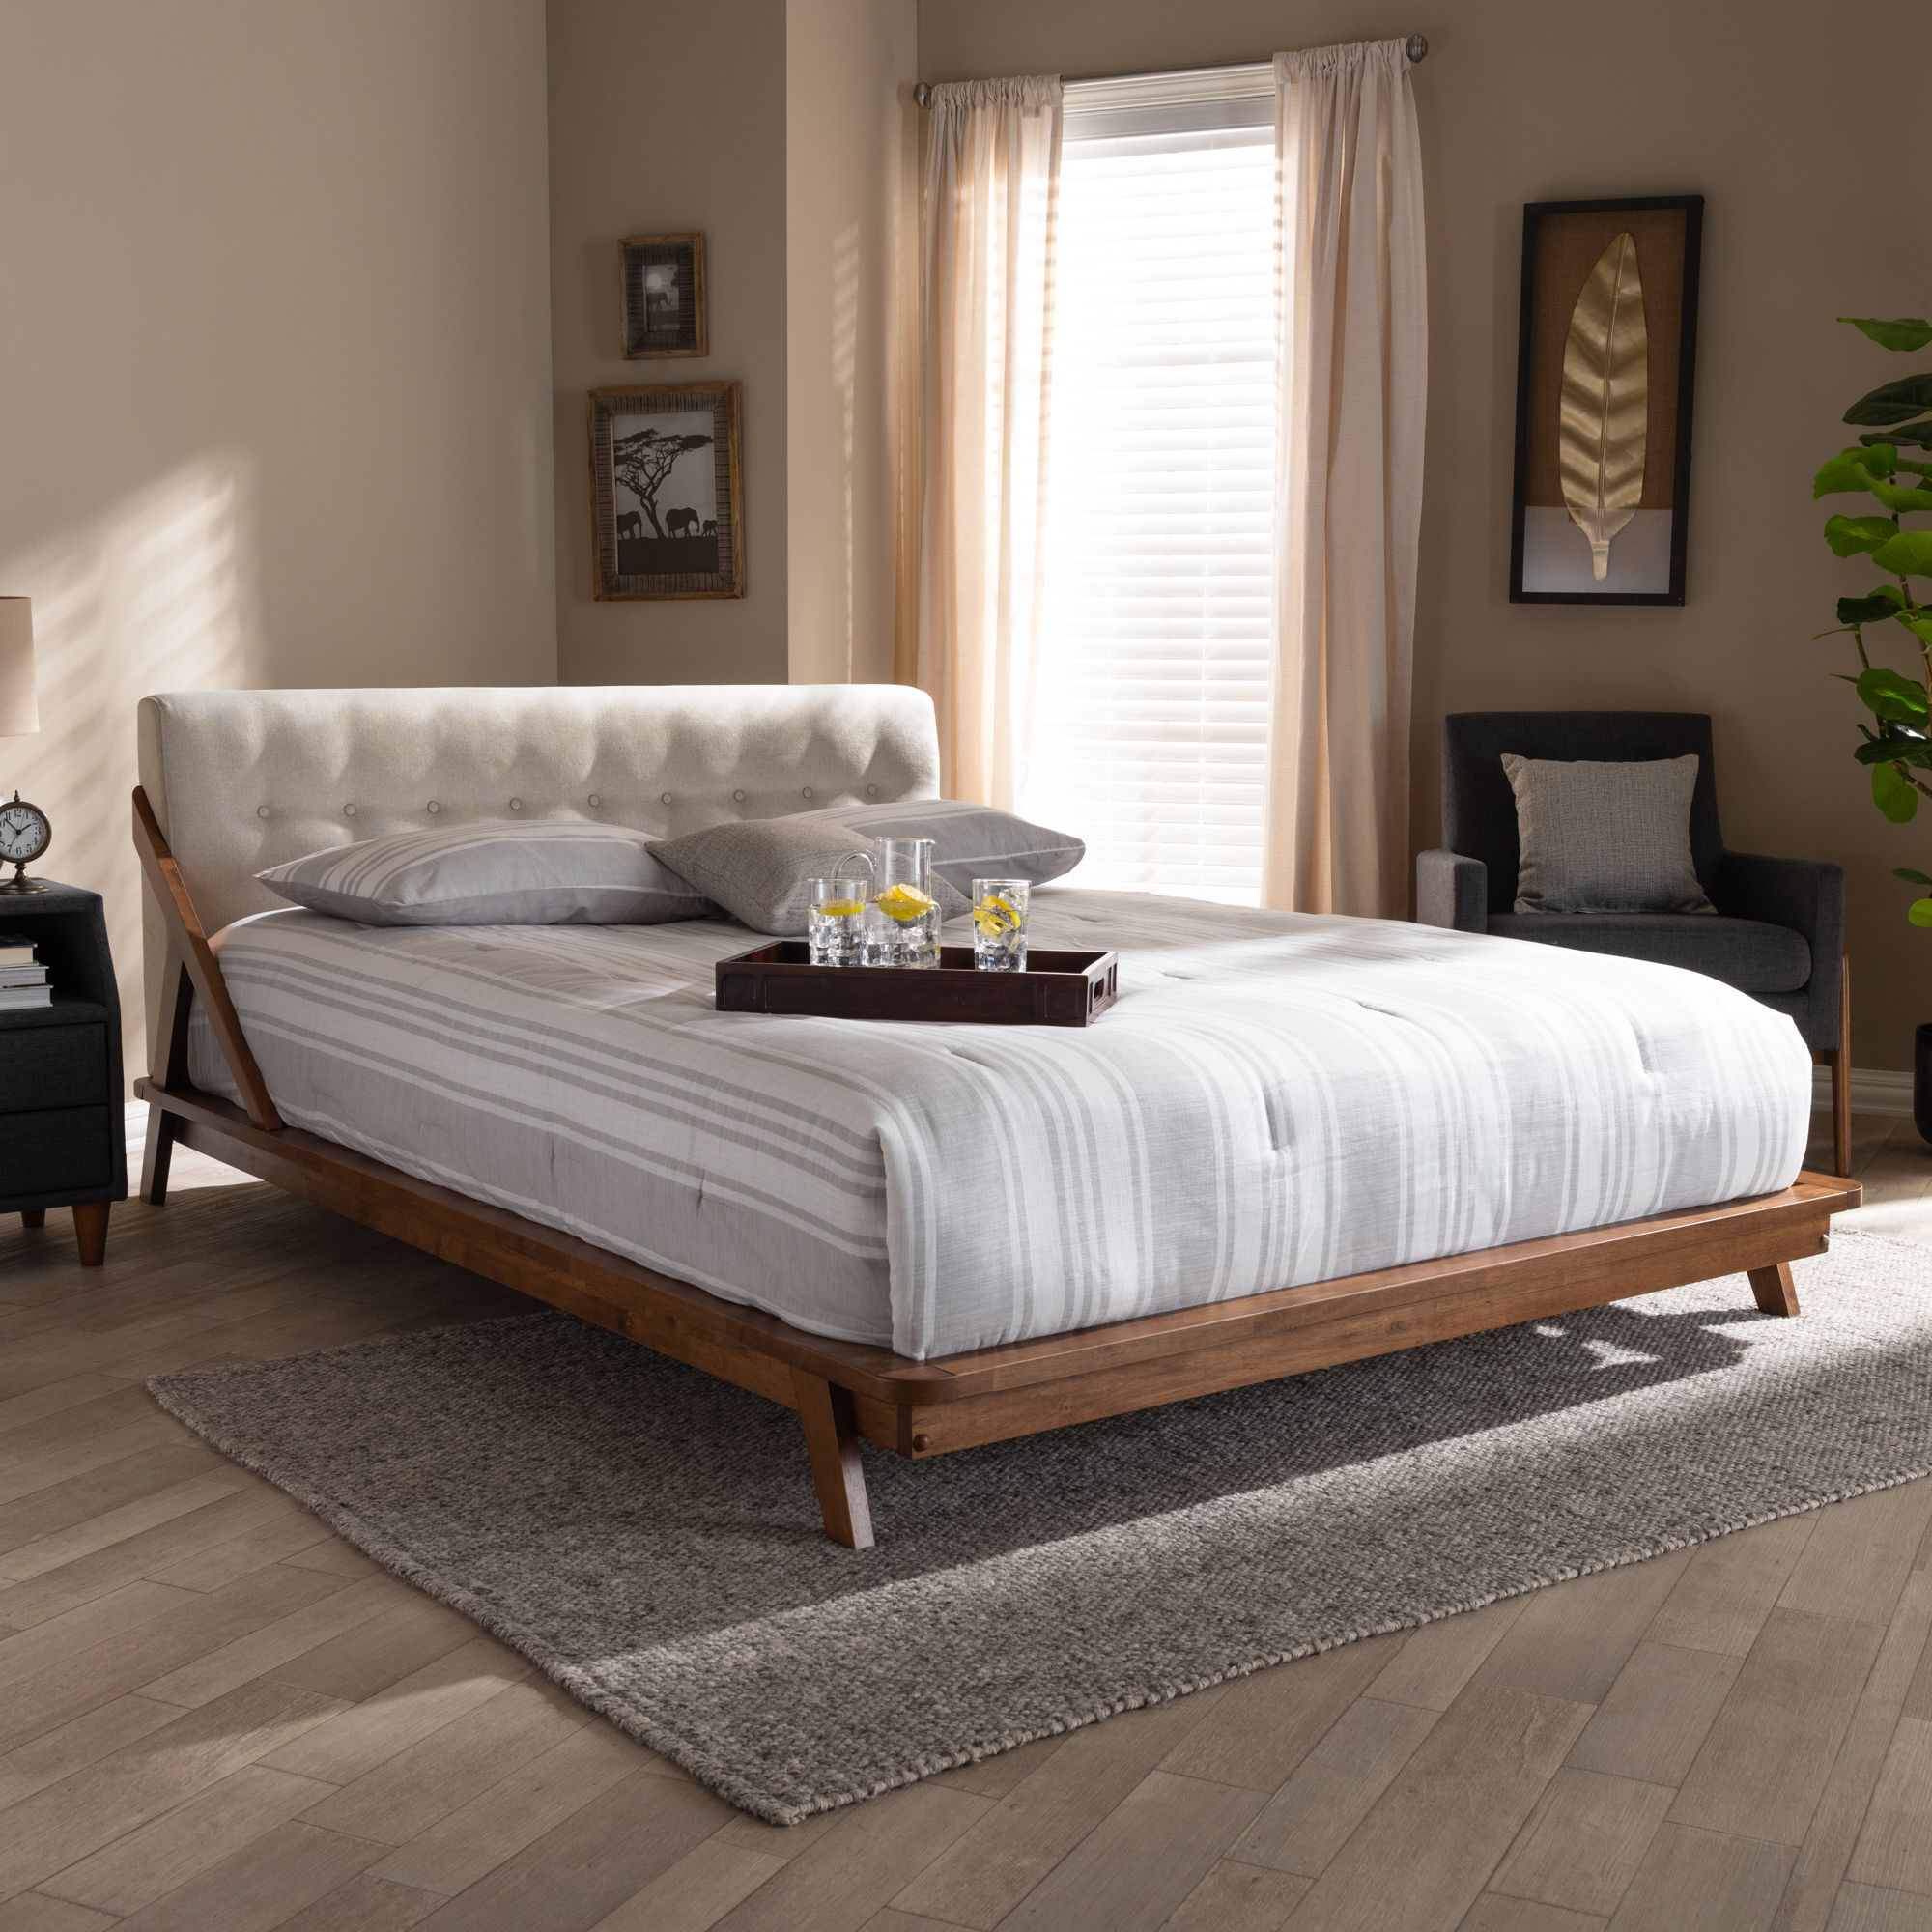 Home In 2020 Upholstered Platform Bed King Size Platform Bed